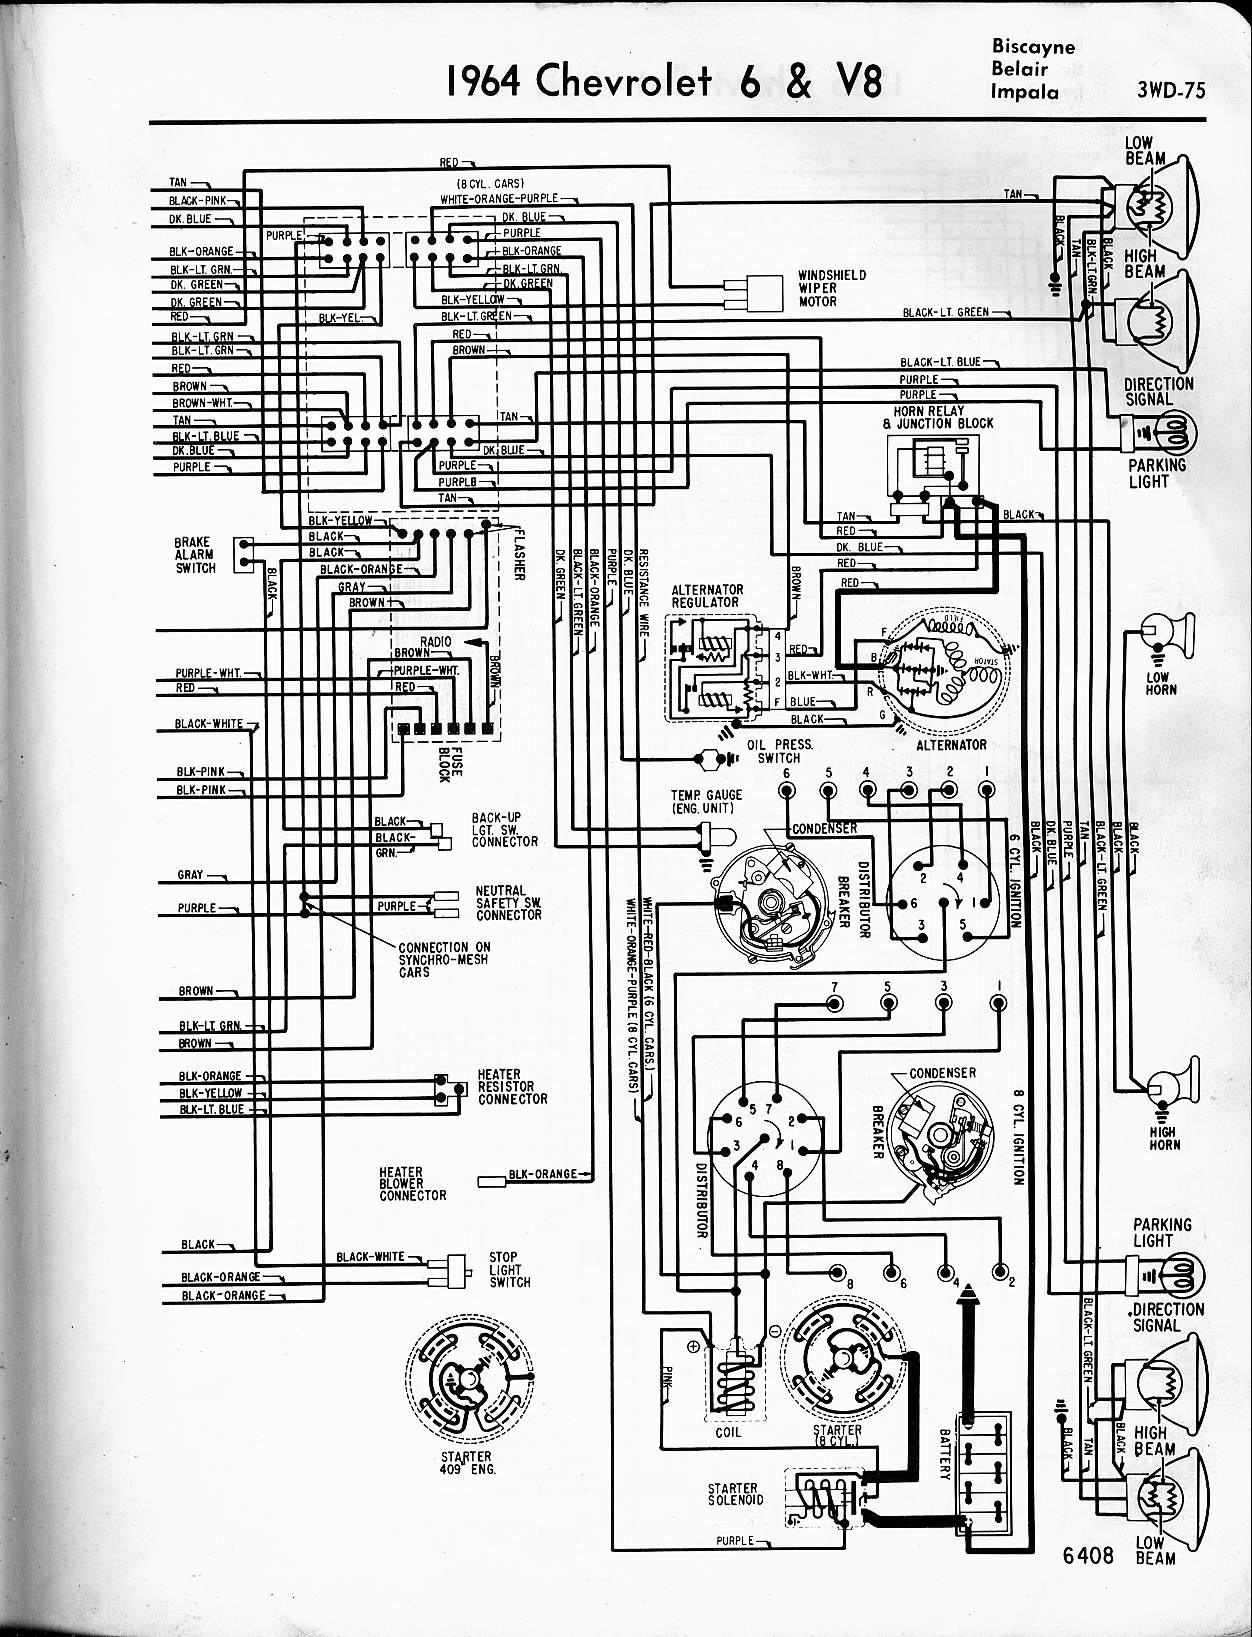 64 chevy wiring harness diagram 1957 chevy wiring harness diagram